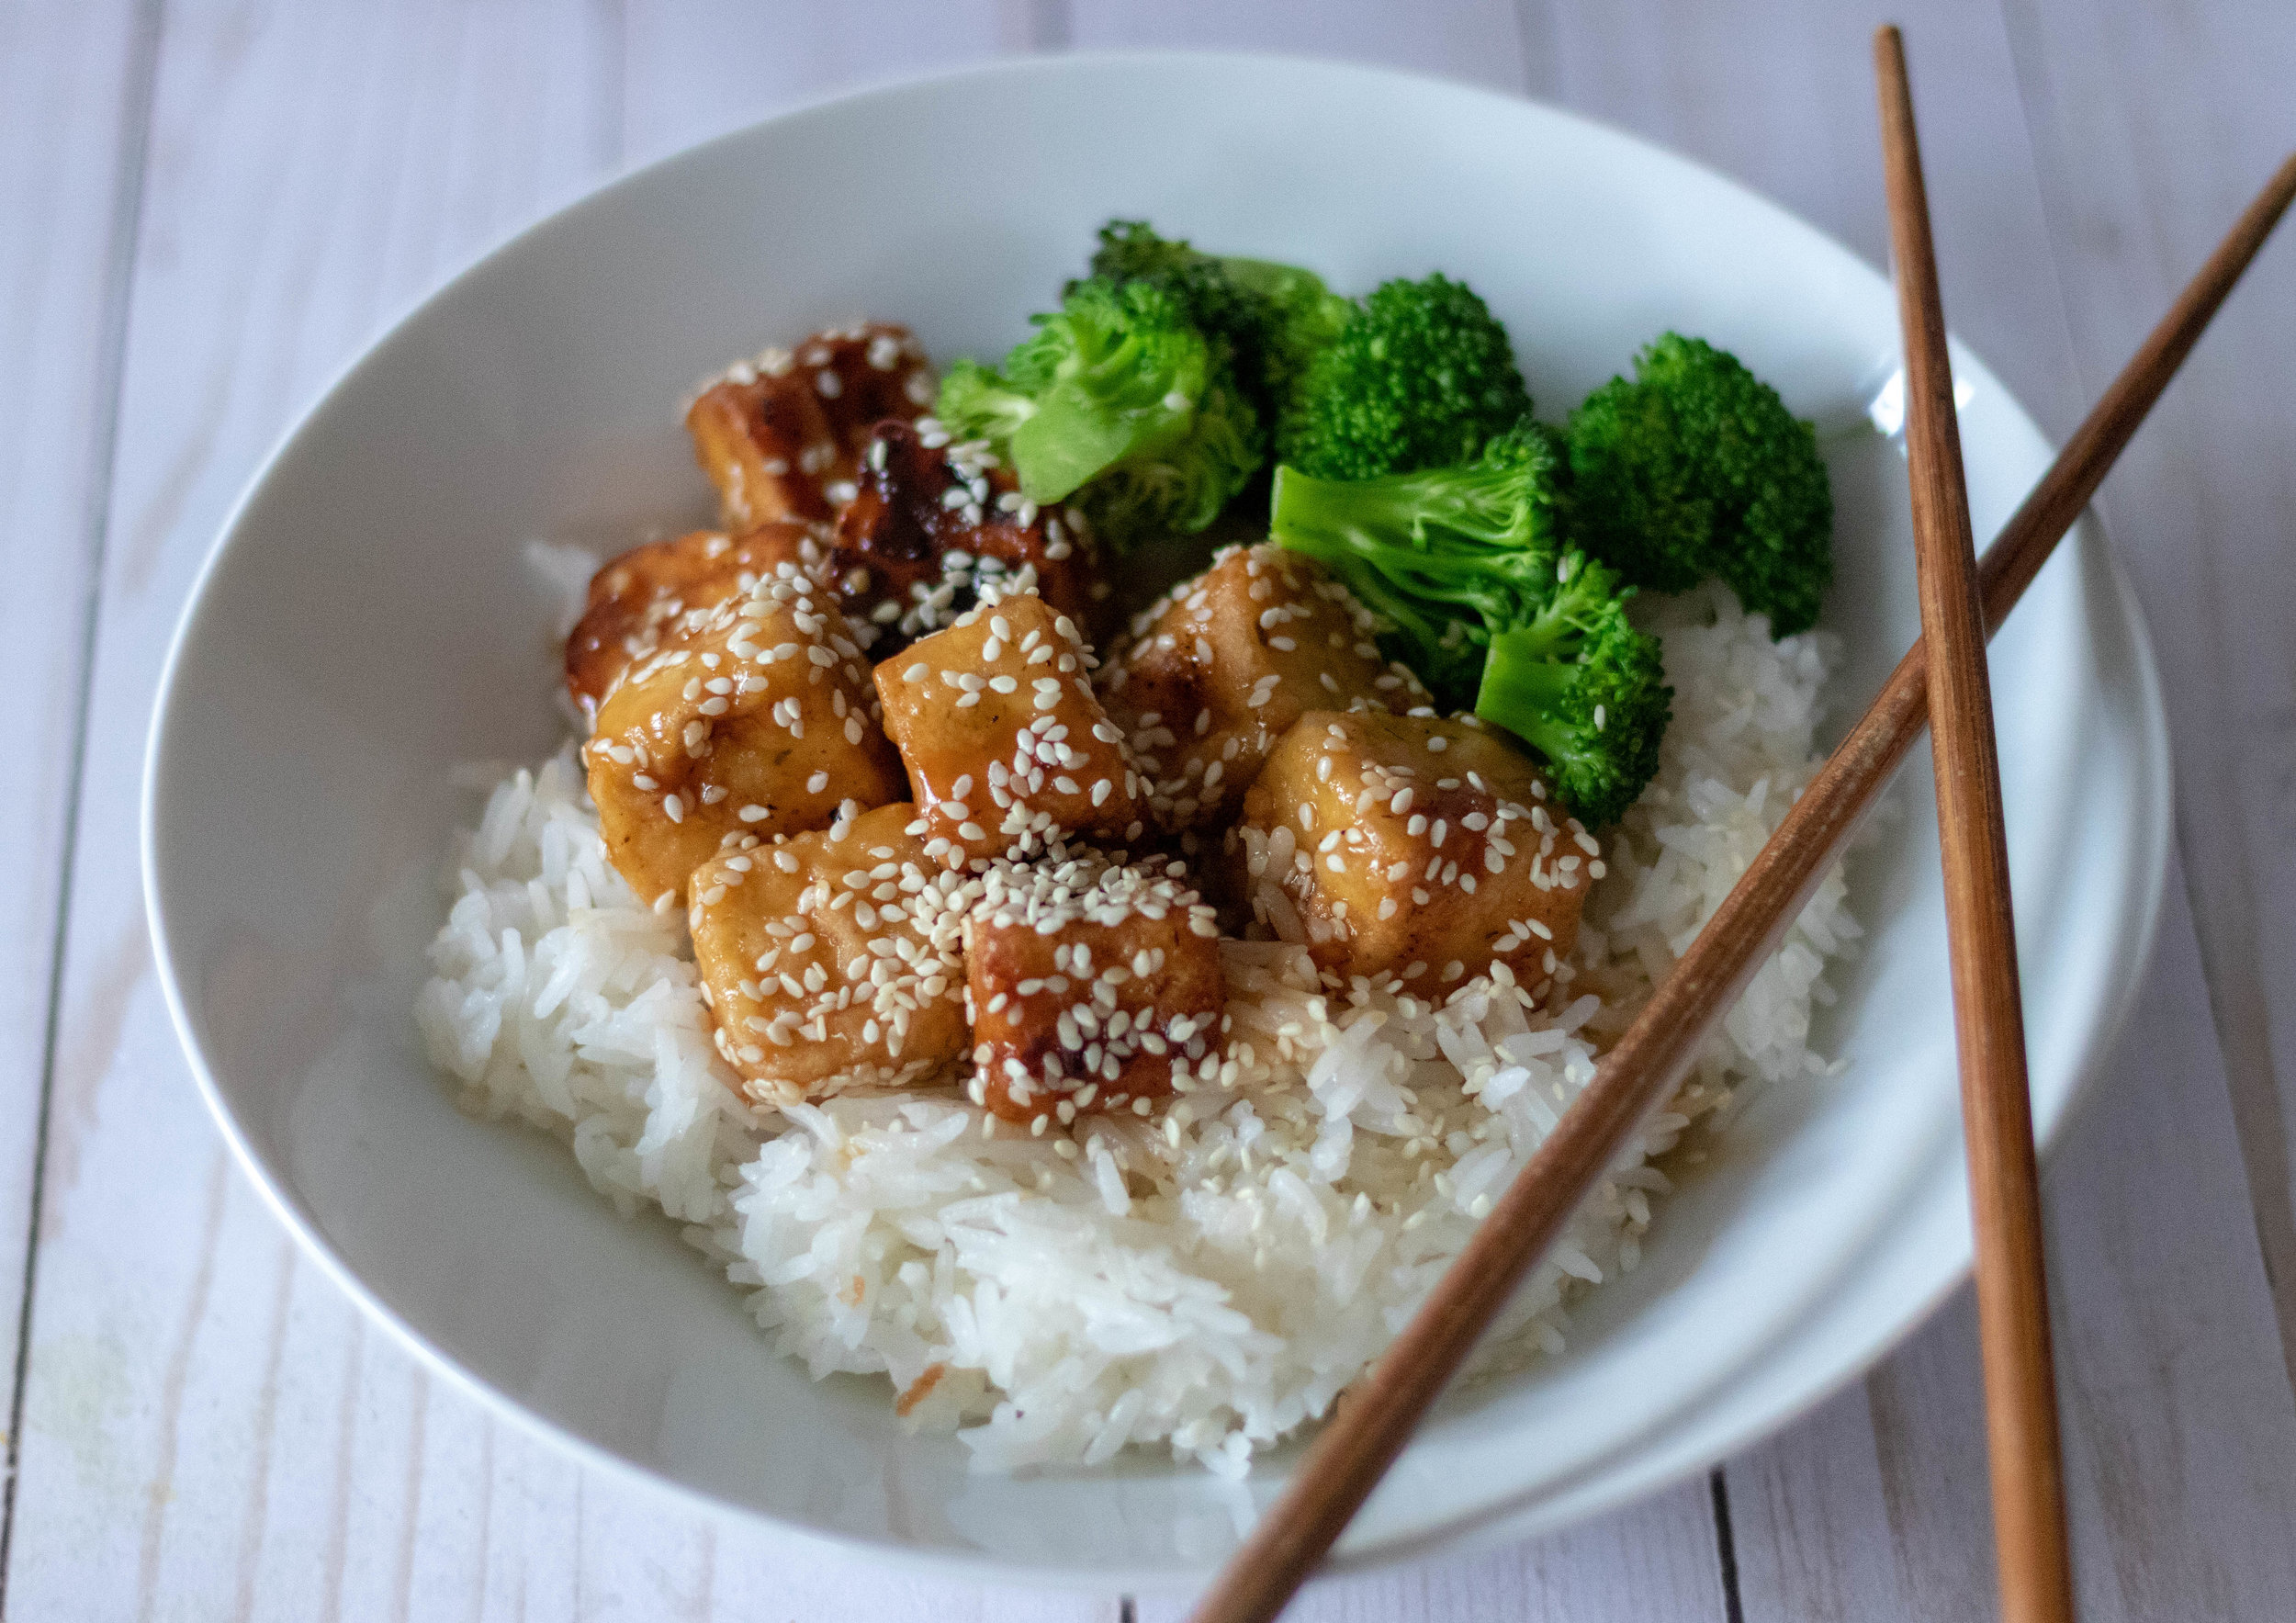 Sesame tofu over rice with broccoli.